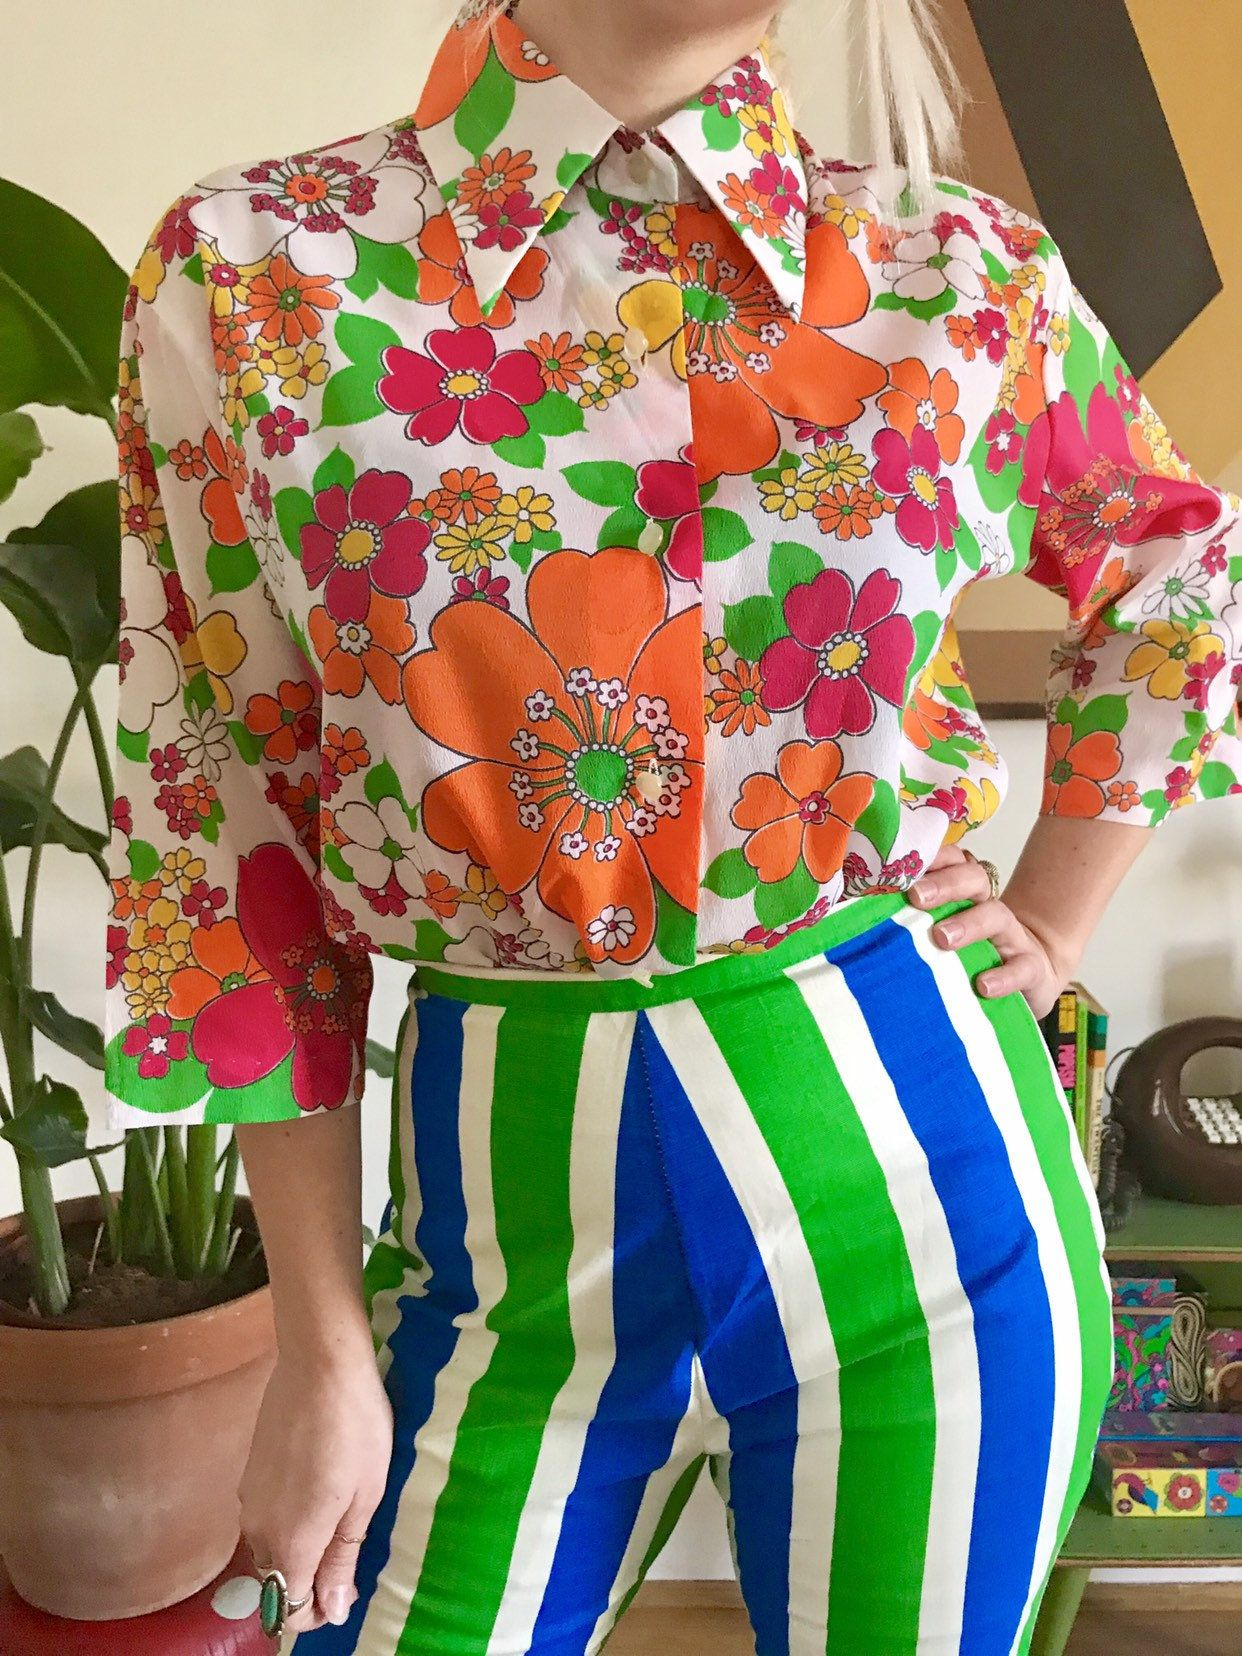 Vintage 1960s Flower Power Collared Blouse L Xl Mod 60s 70s Dagger Collared Button Down Shirt Day Glo Pink Orange Green Daisy Print Top